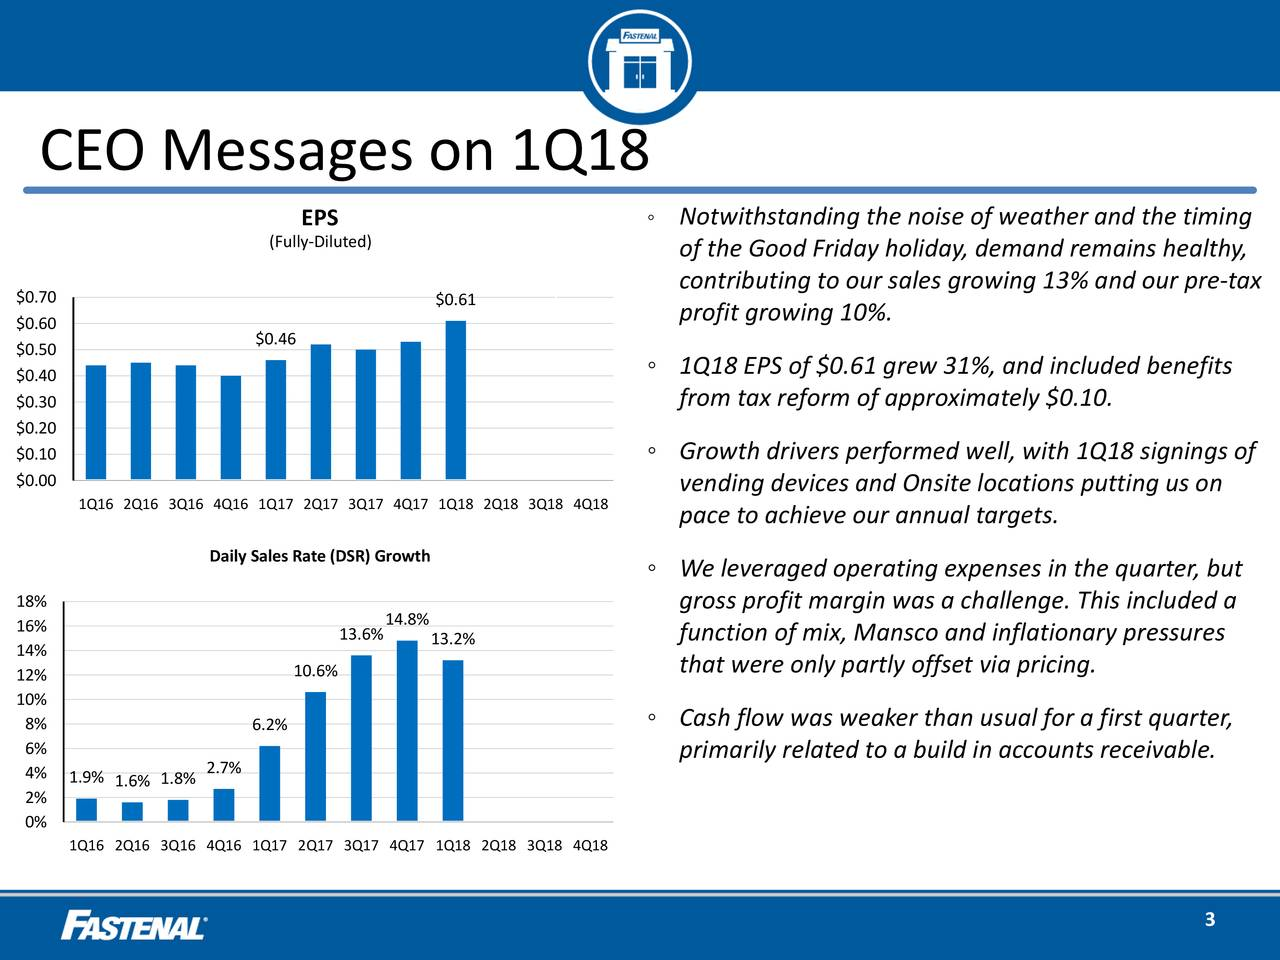 CEO Messages on 1Q18